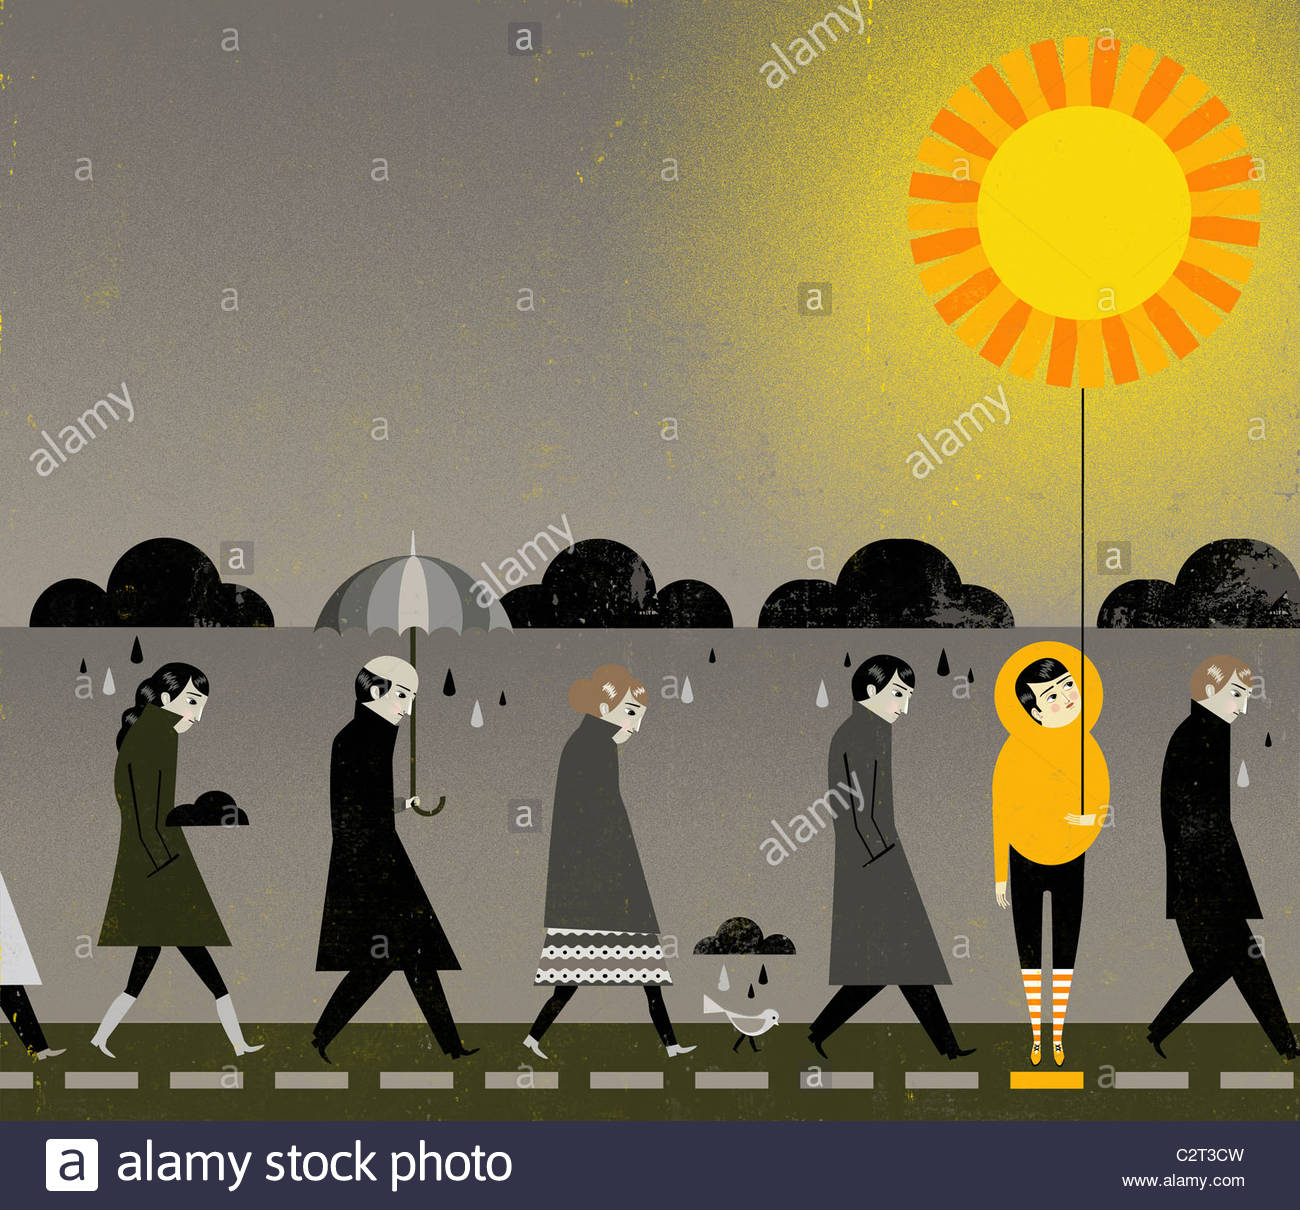 People under rain clouds, one holding sun-shaped balloon - Stock Image